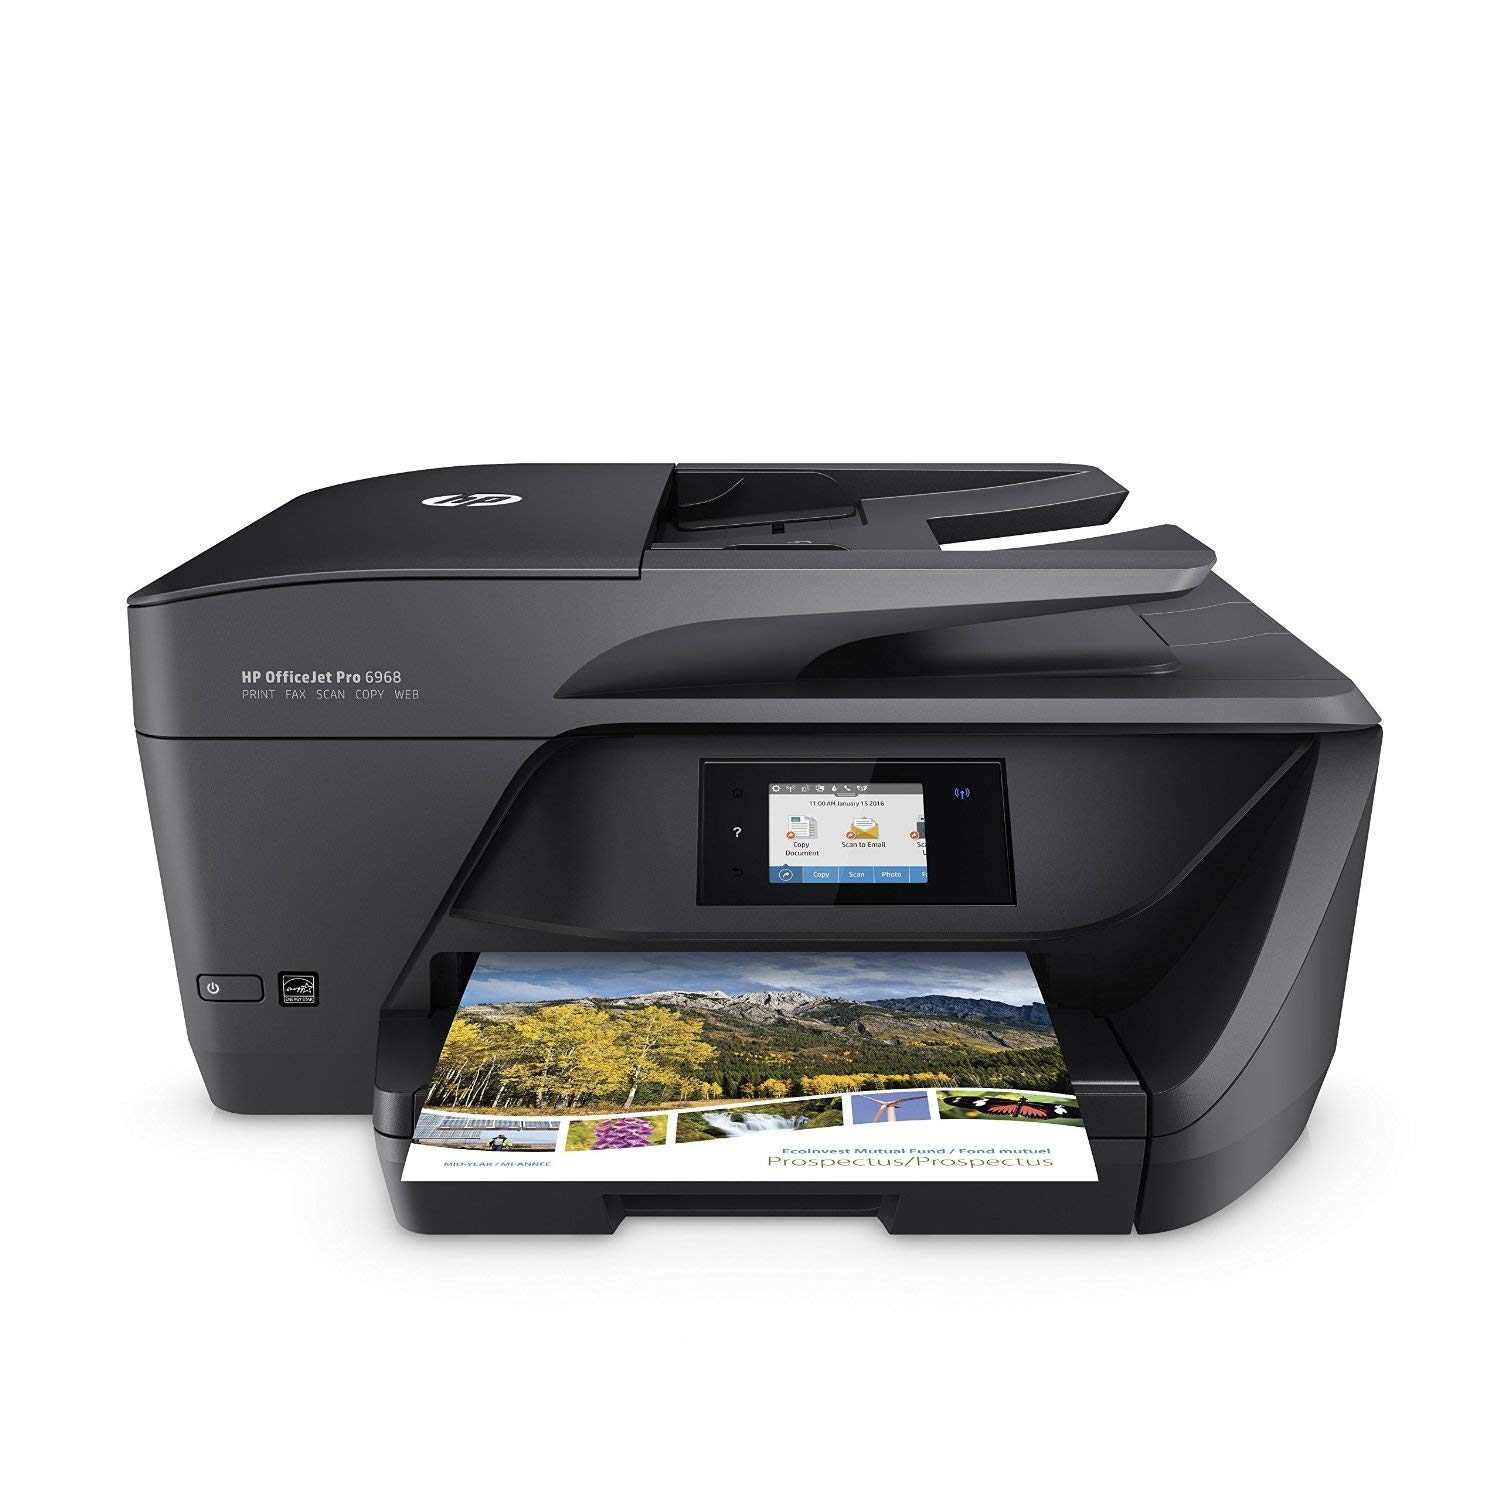 HP OfficeJet Pro 6968 All-in-One Wireless Printer with Mobile Printing, Instant Ink Ready (T0F28A) (Renewed) by HP